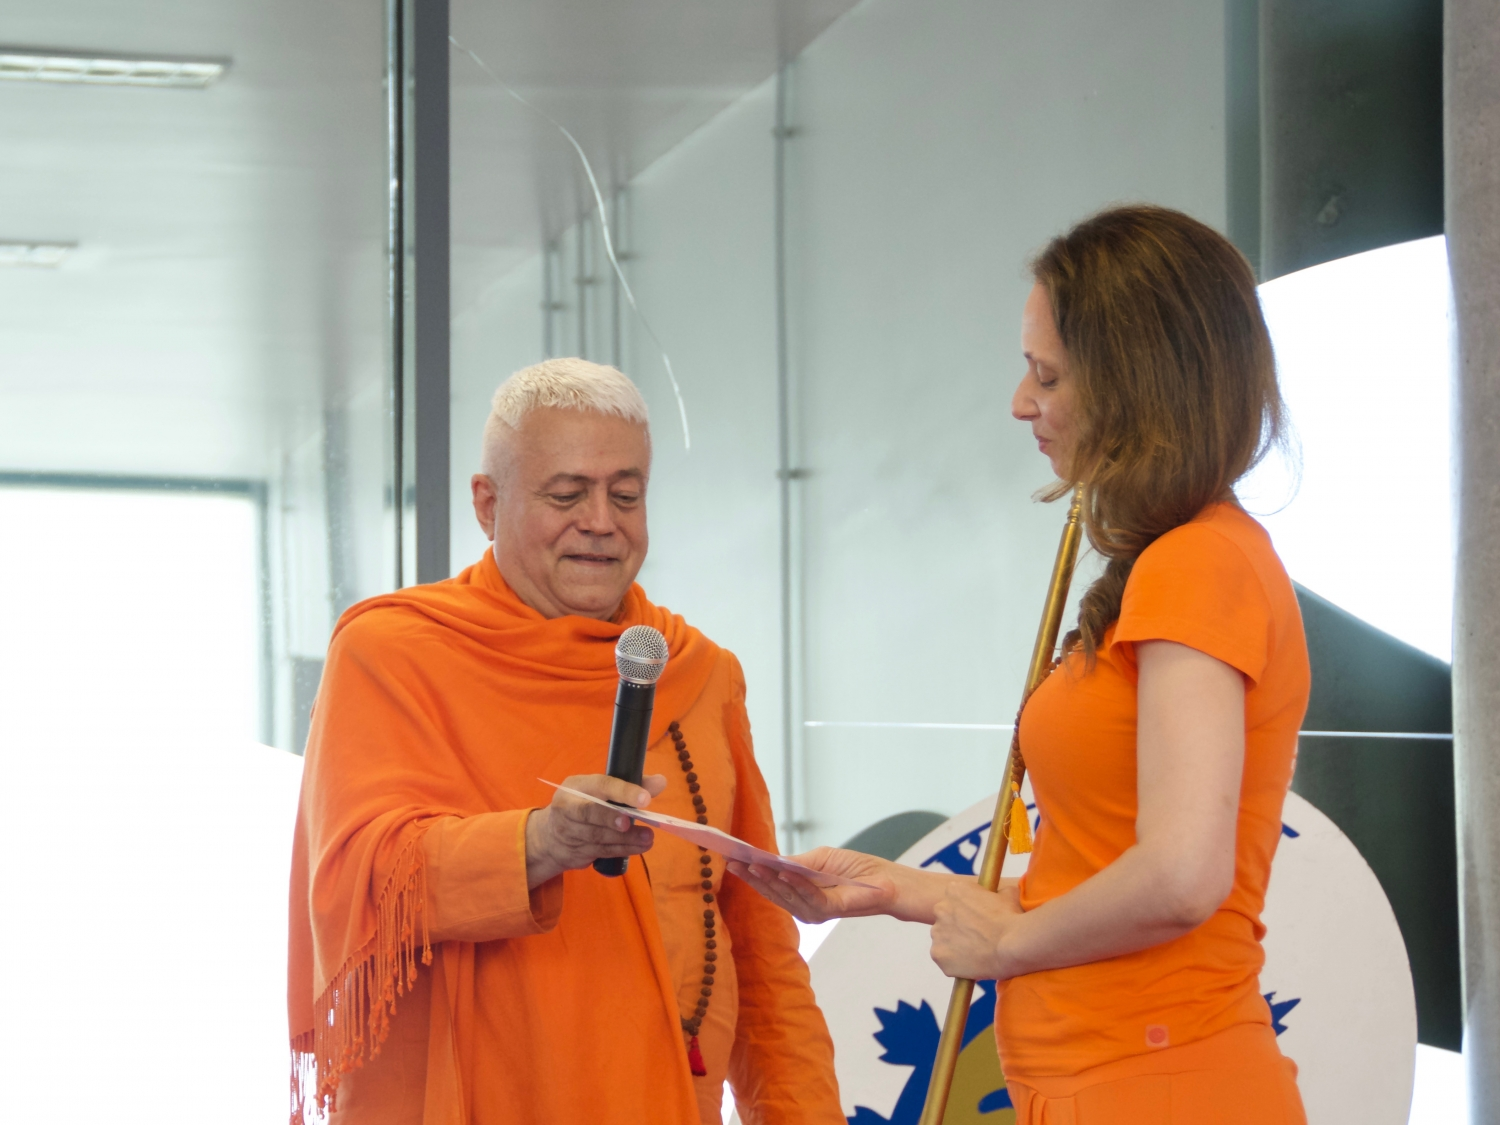 IDY - 2019, June, 23rd - Yogi of the Year Award : Master Jagat Guru Sváminí Chandra Shakti Deví Jyotishmatí